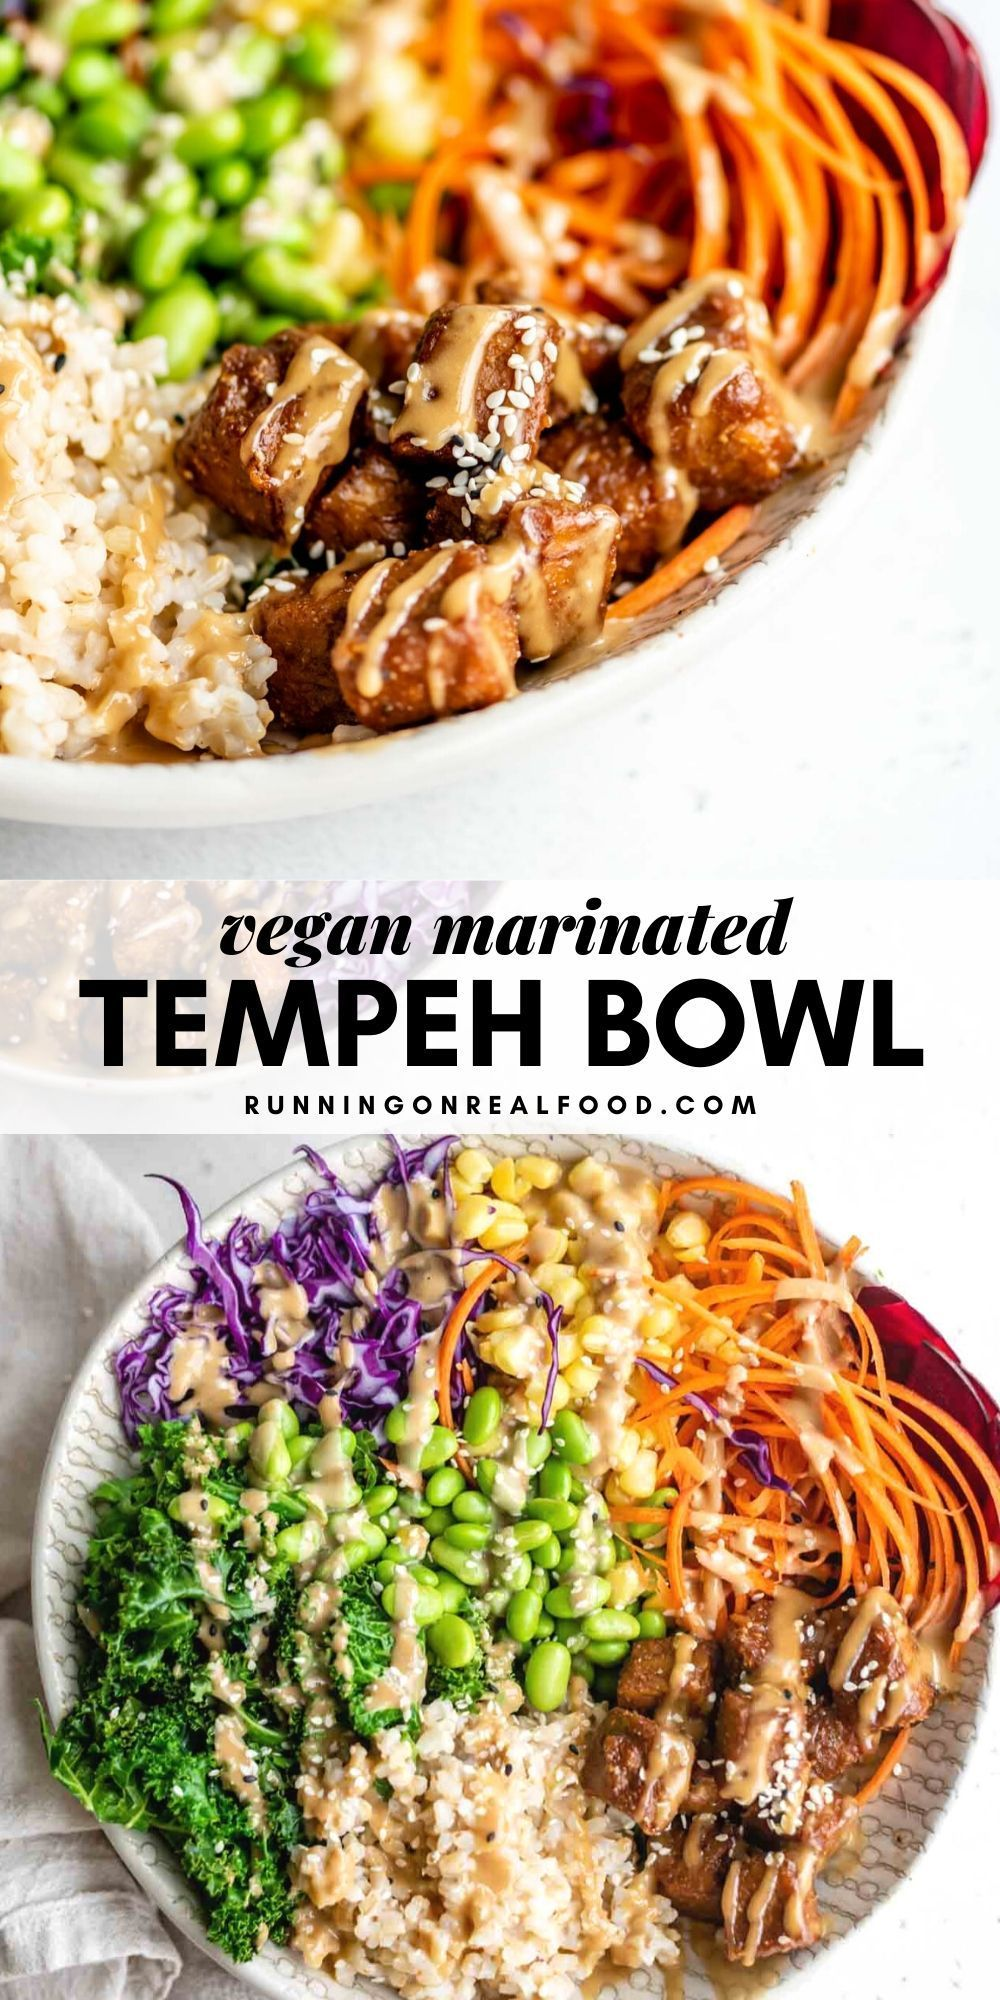 Vegan Marinated Tempeh Bowl